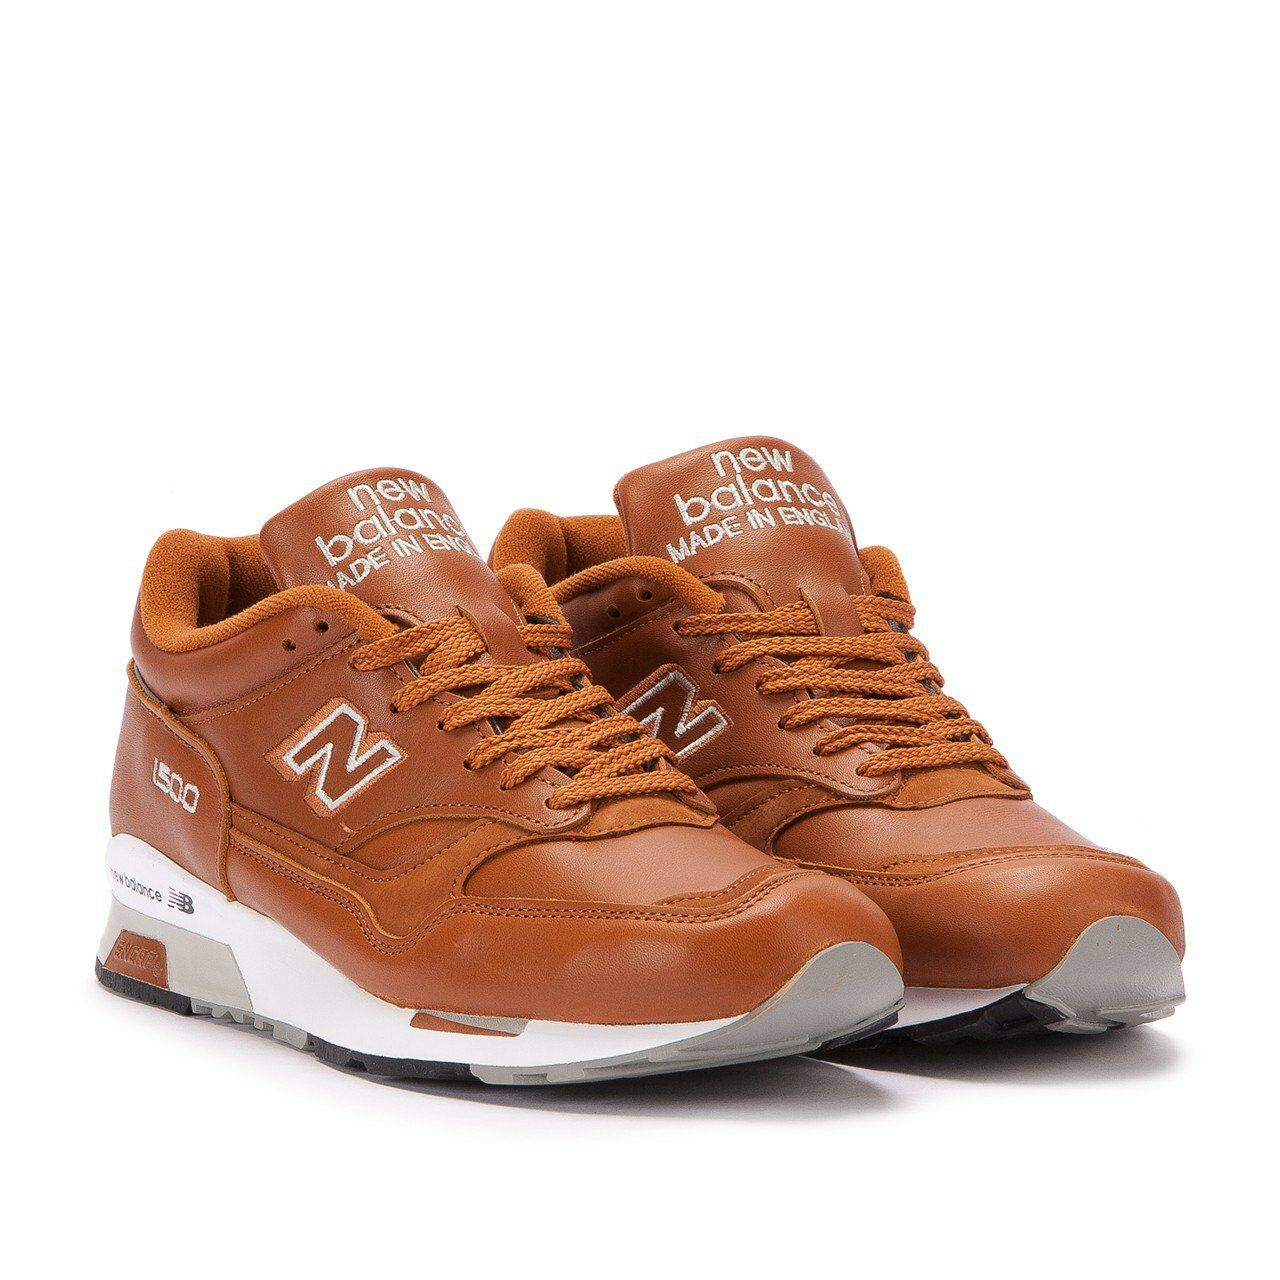 MENS NEW BALANCE M1500TN - MADE IN ENGLAND UK 8.5  EUR 42.5